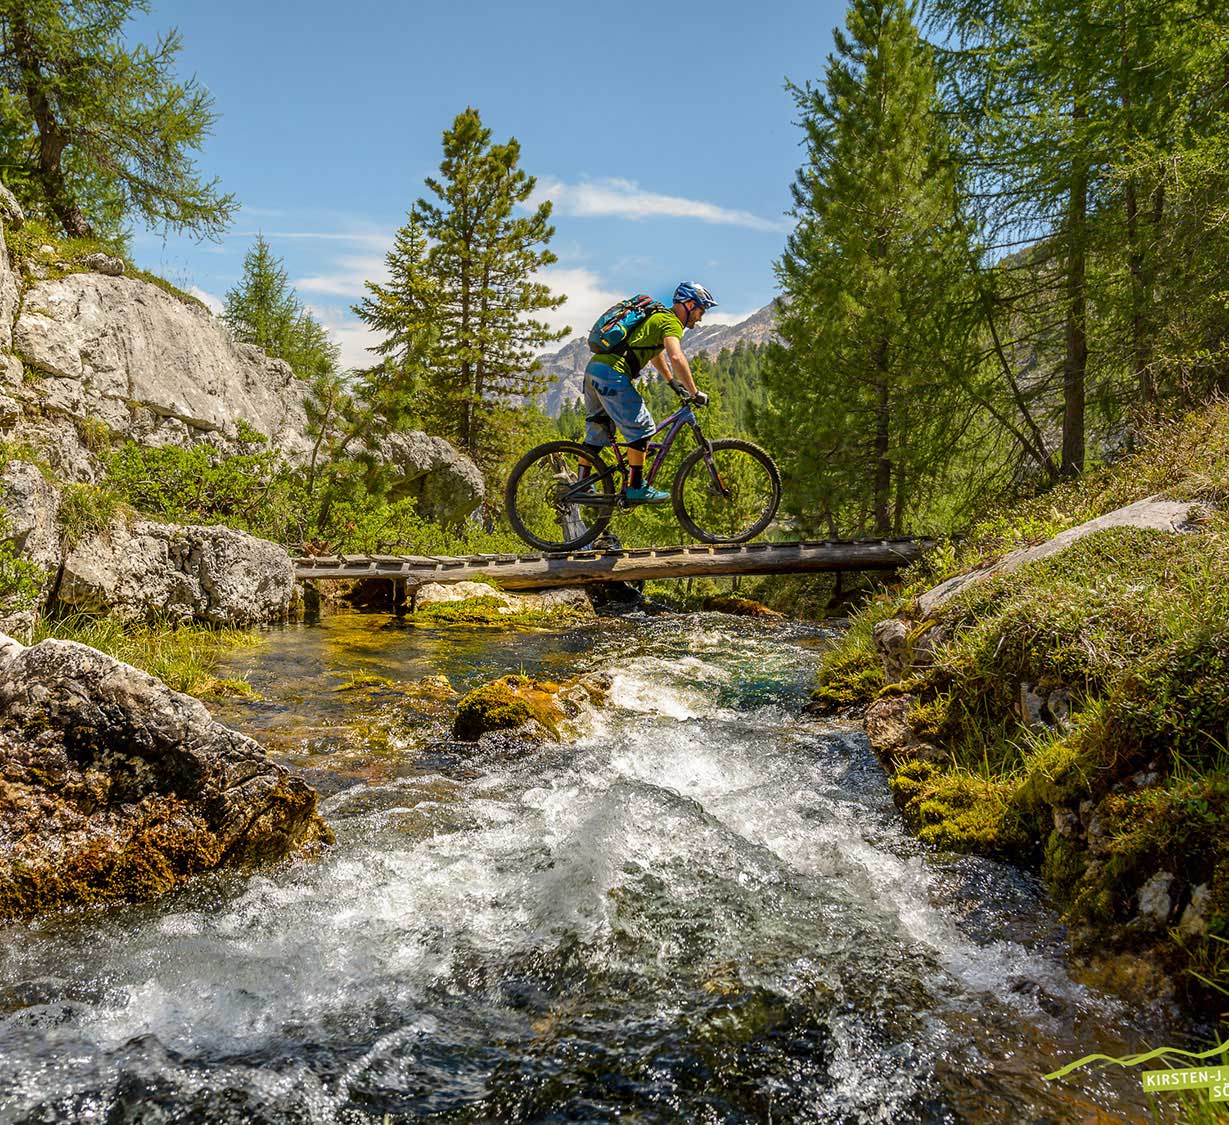 South Tyrol and Tauferer Ahrntal eldorado for mountain bikers.